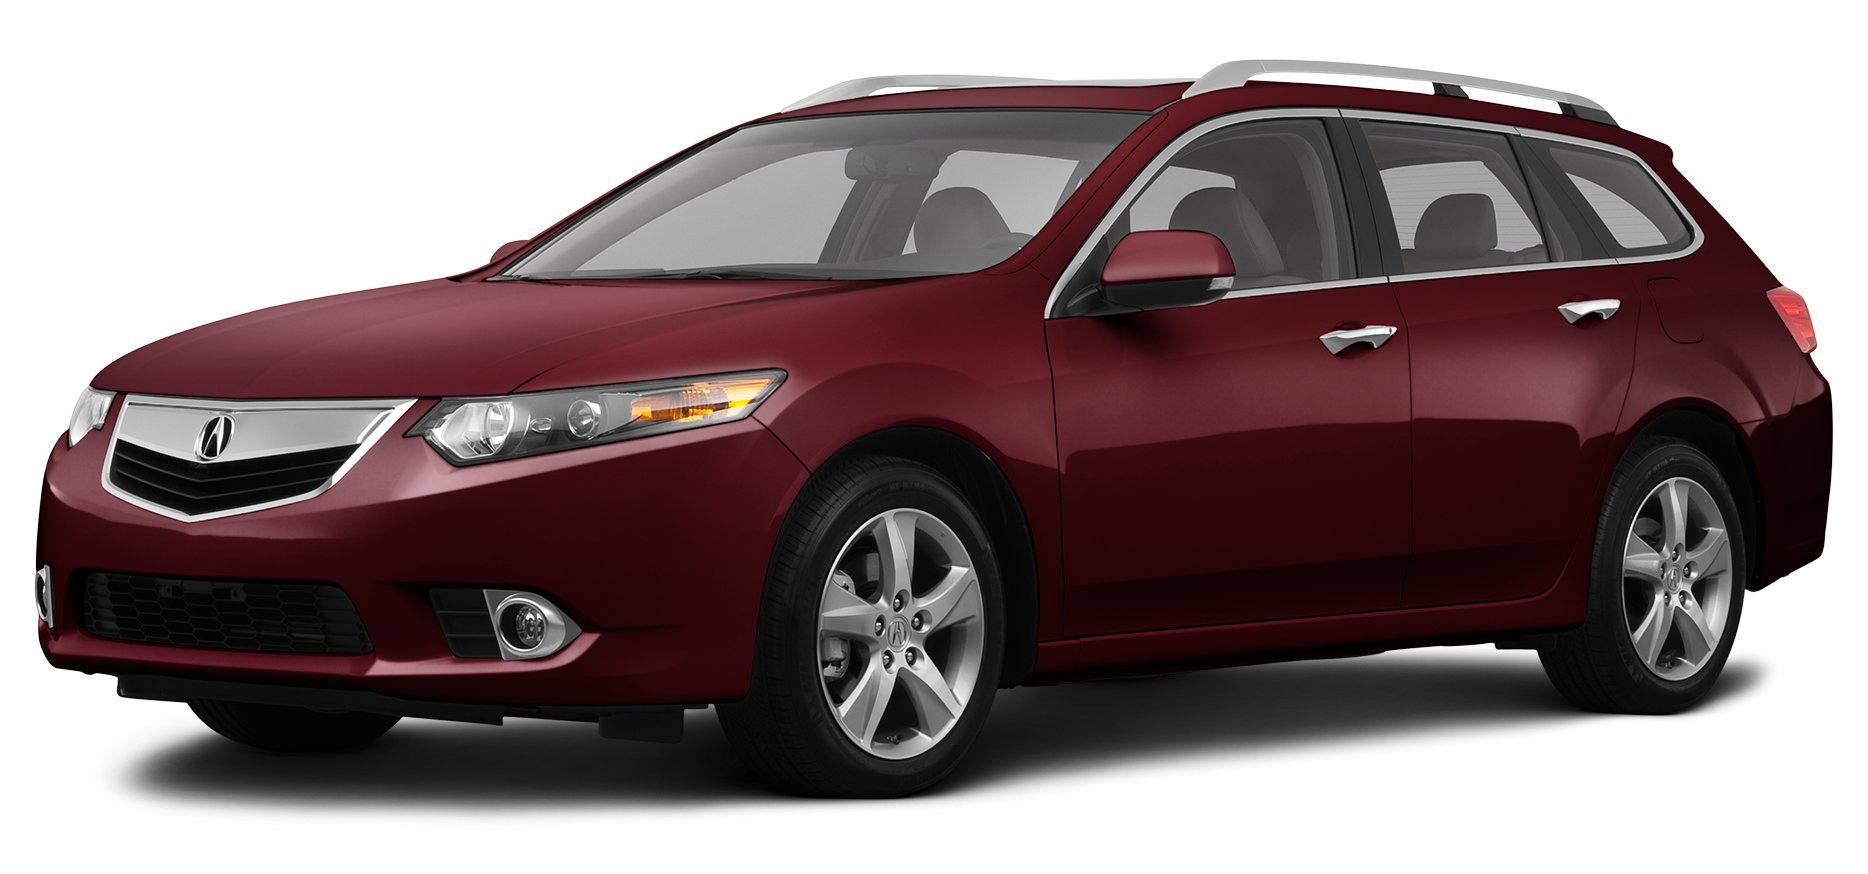 amazon com 2012 acura tsx reviews images and specs vehicles rh amazon com 2005 Acura TSX Wing 2007 Acura TSX